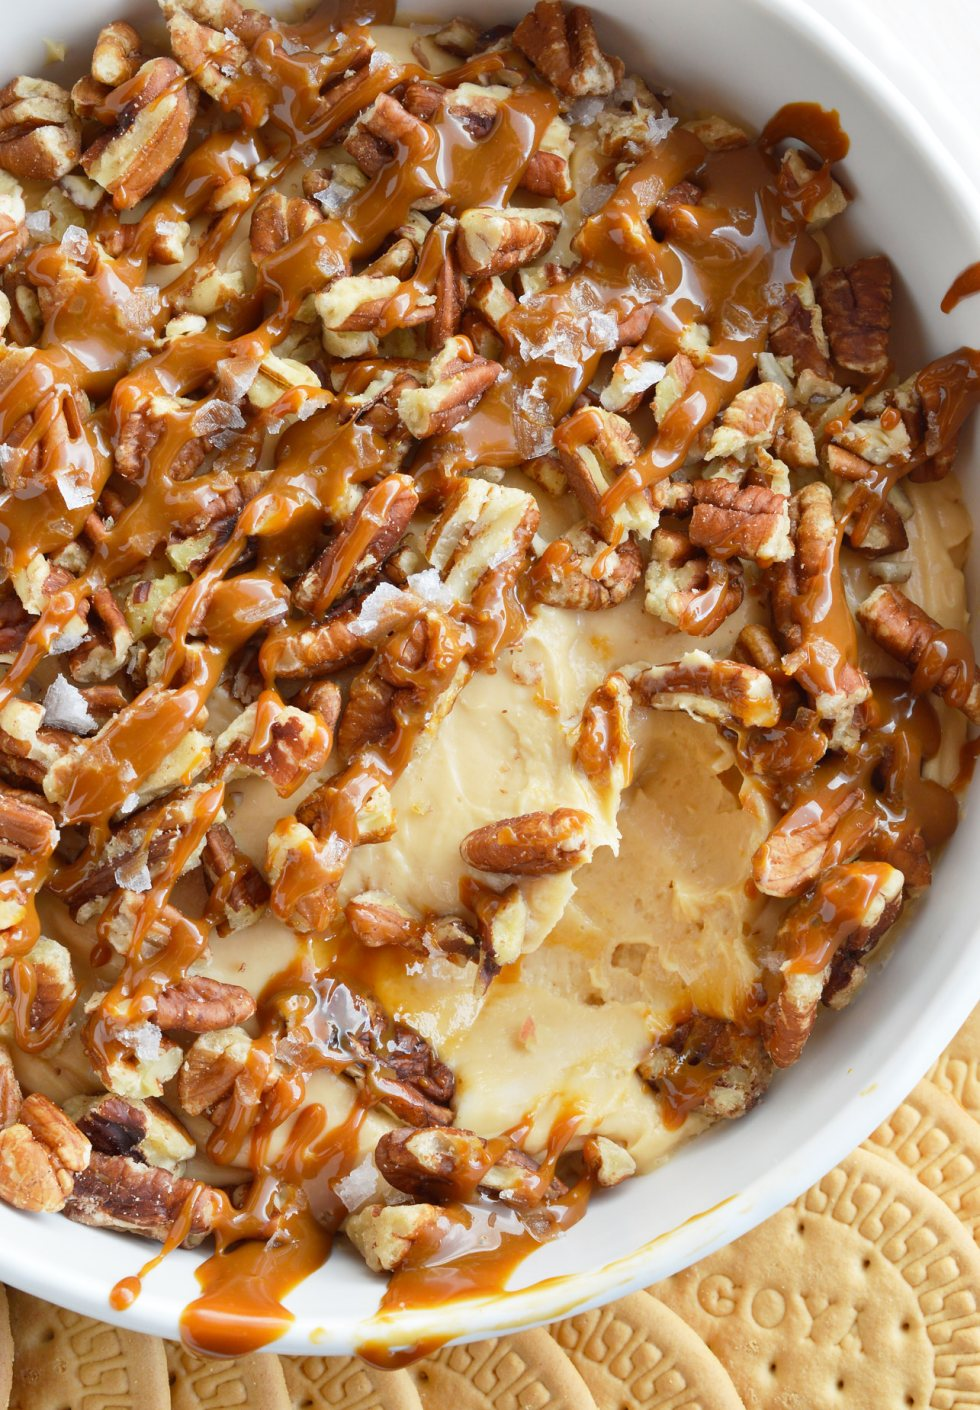 cheesecake dip topped with drizzled caramel and pecans